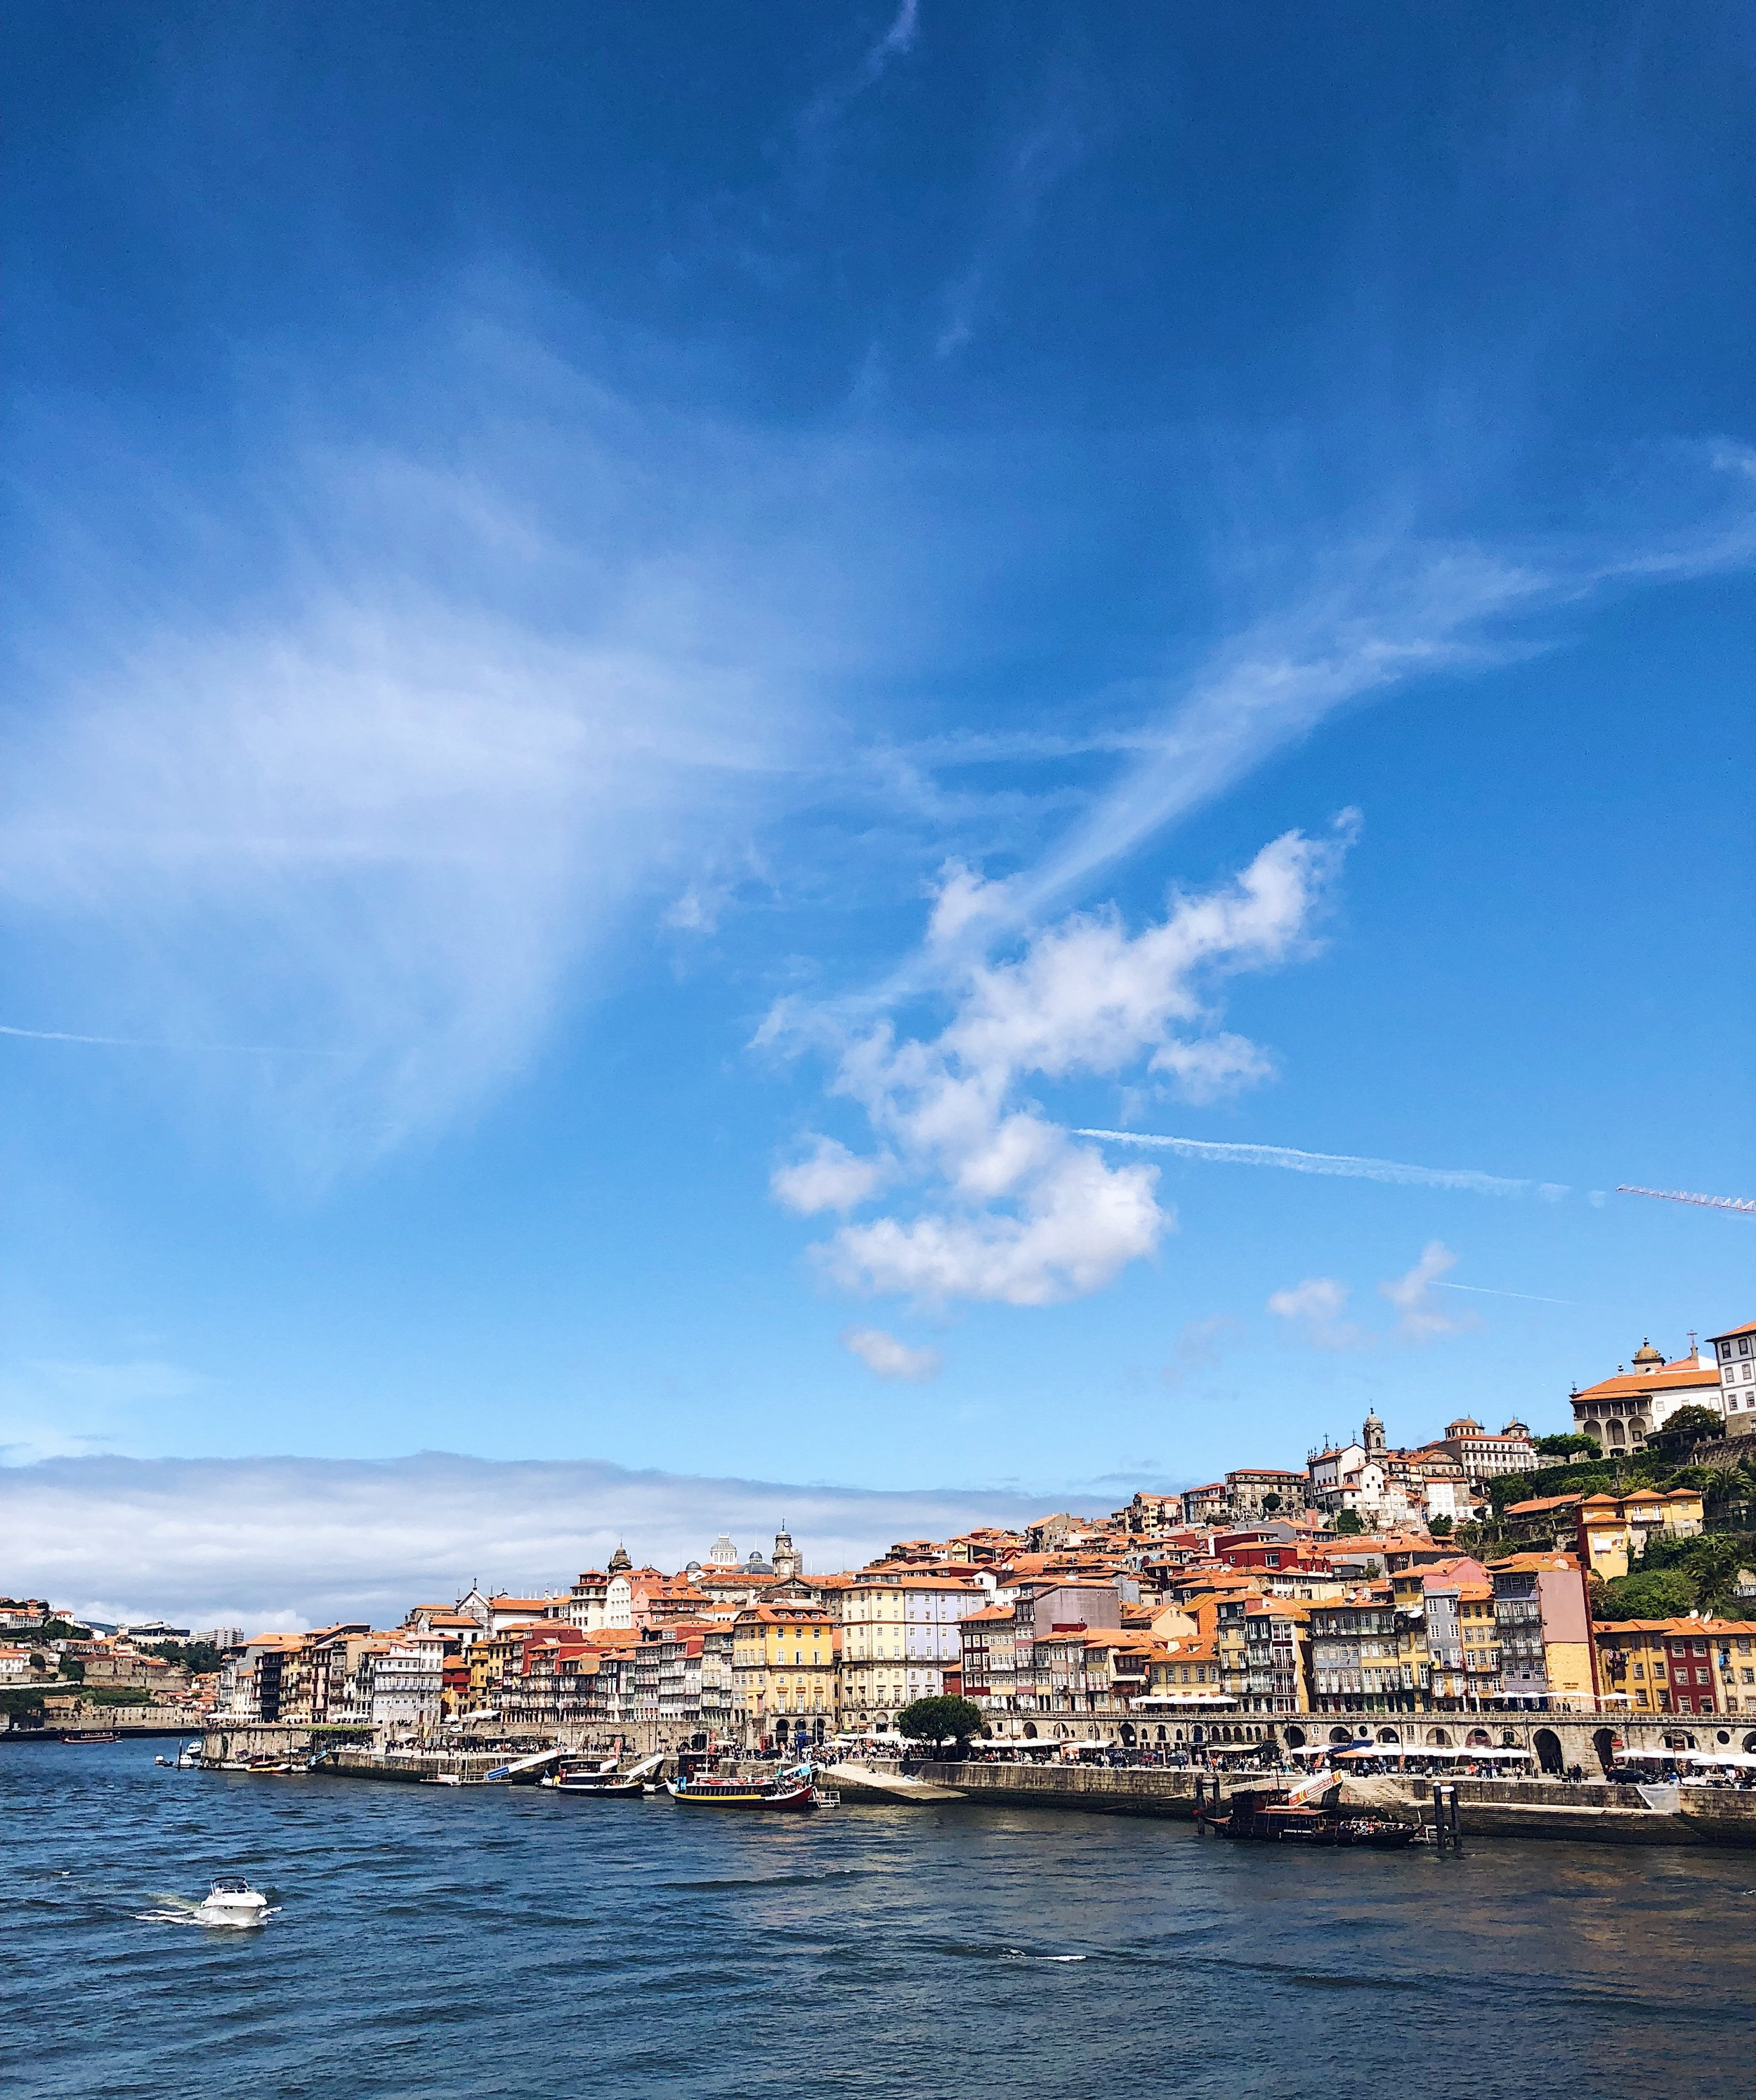 Porto, Portugal  (taken from the Gaia side)